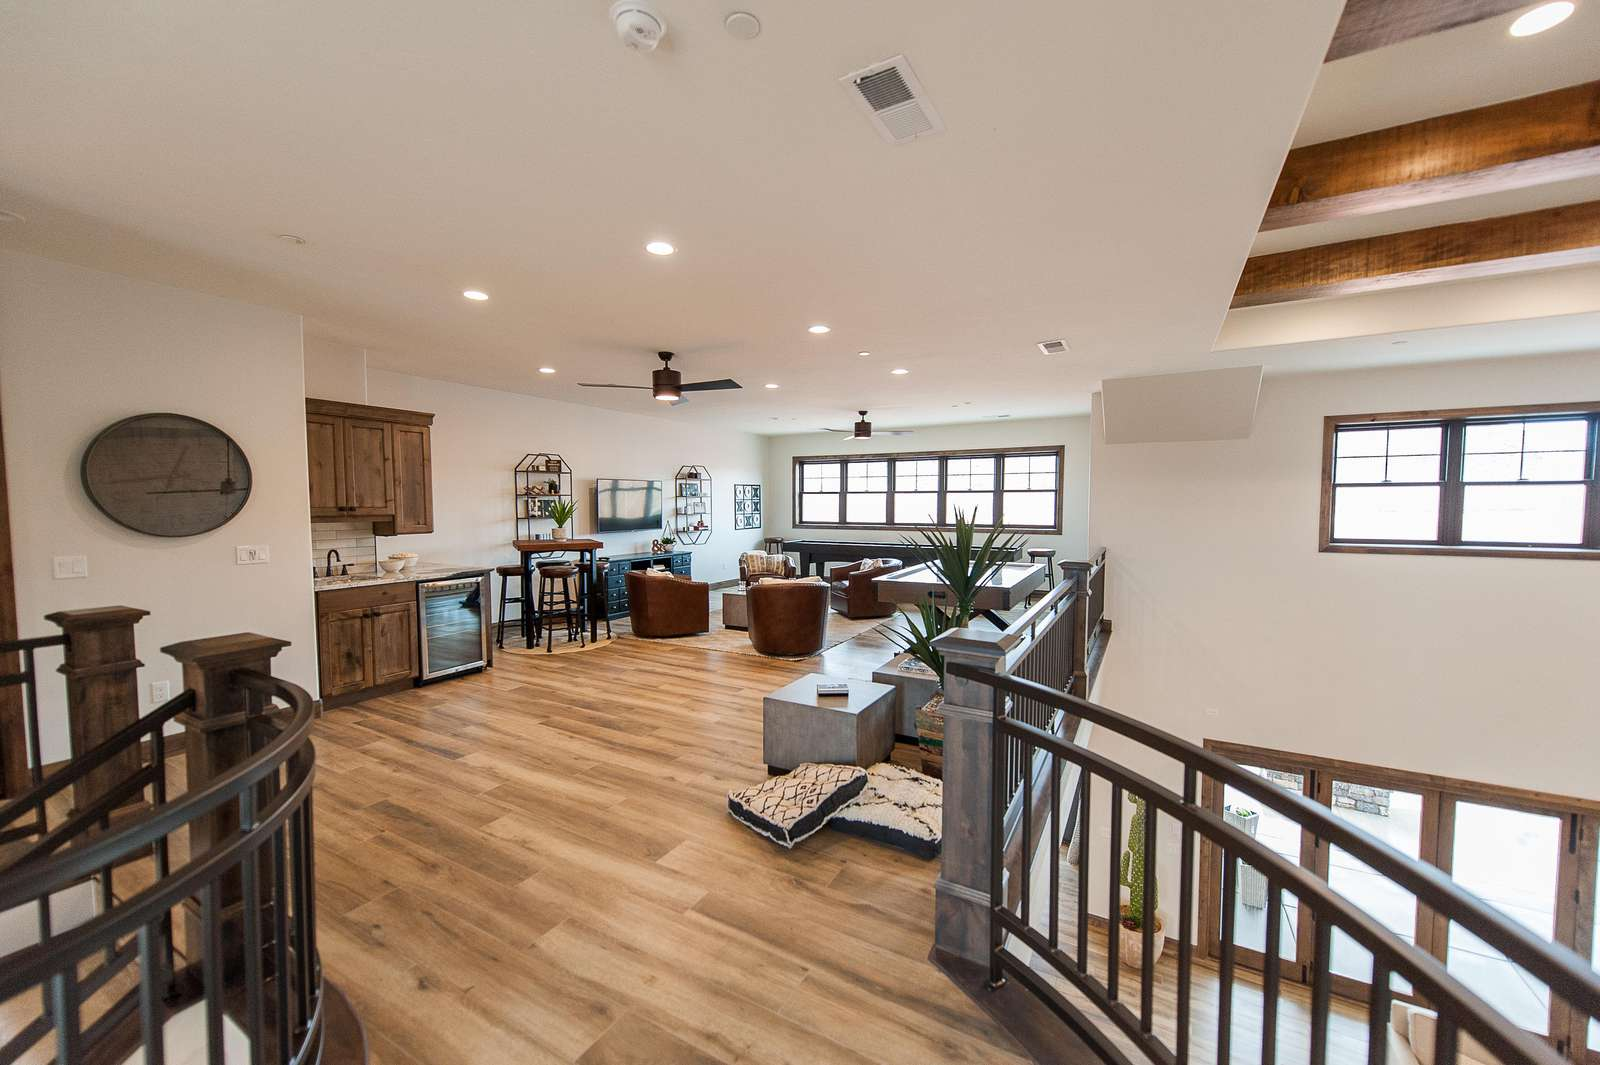 Game room loft includes shuffleboard, fooseball table, and entertainment console